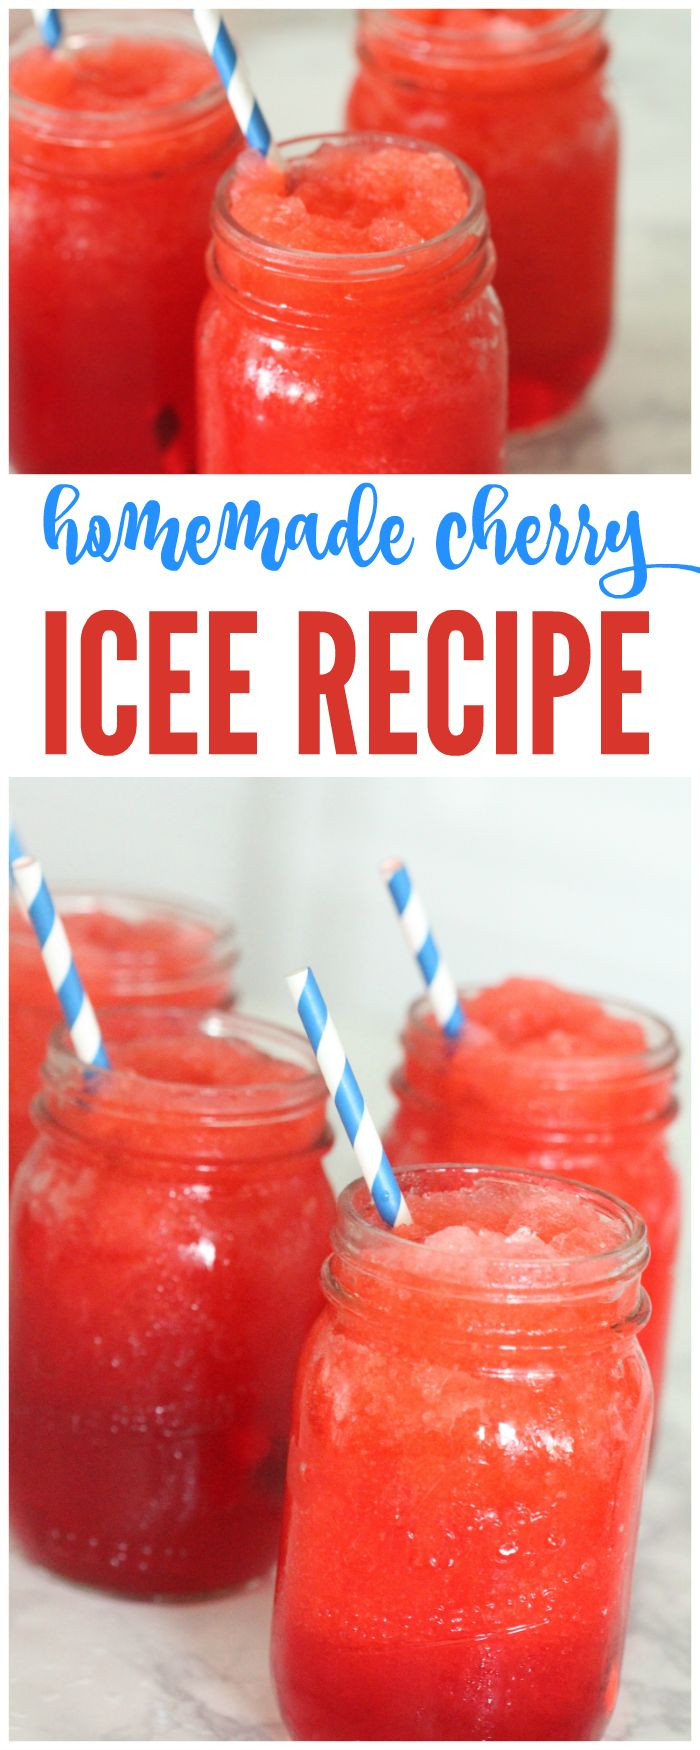 YUM! I have a delicious Homemade Cherry Icee Recipe for Summer that you're sure to love and so will the kids! This is the perfect summer icee that will cool everyone down on a hot summers day!